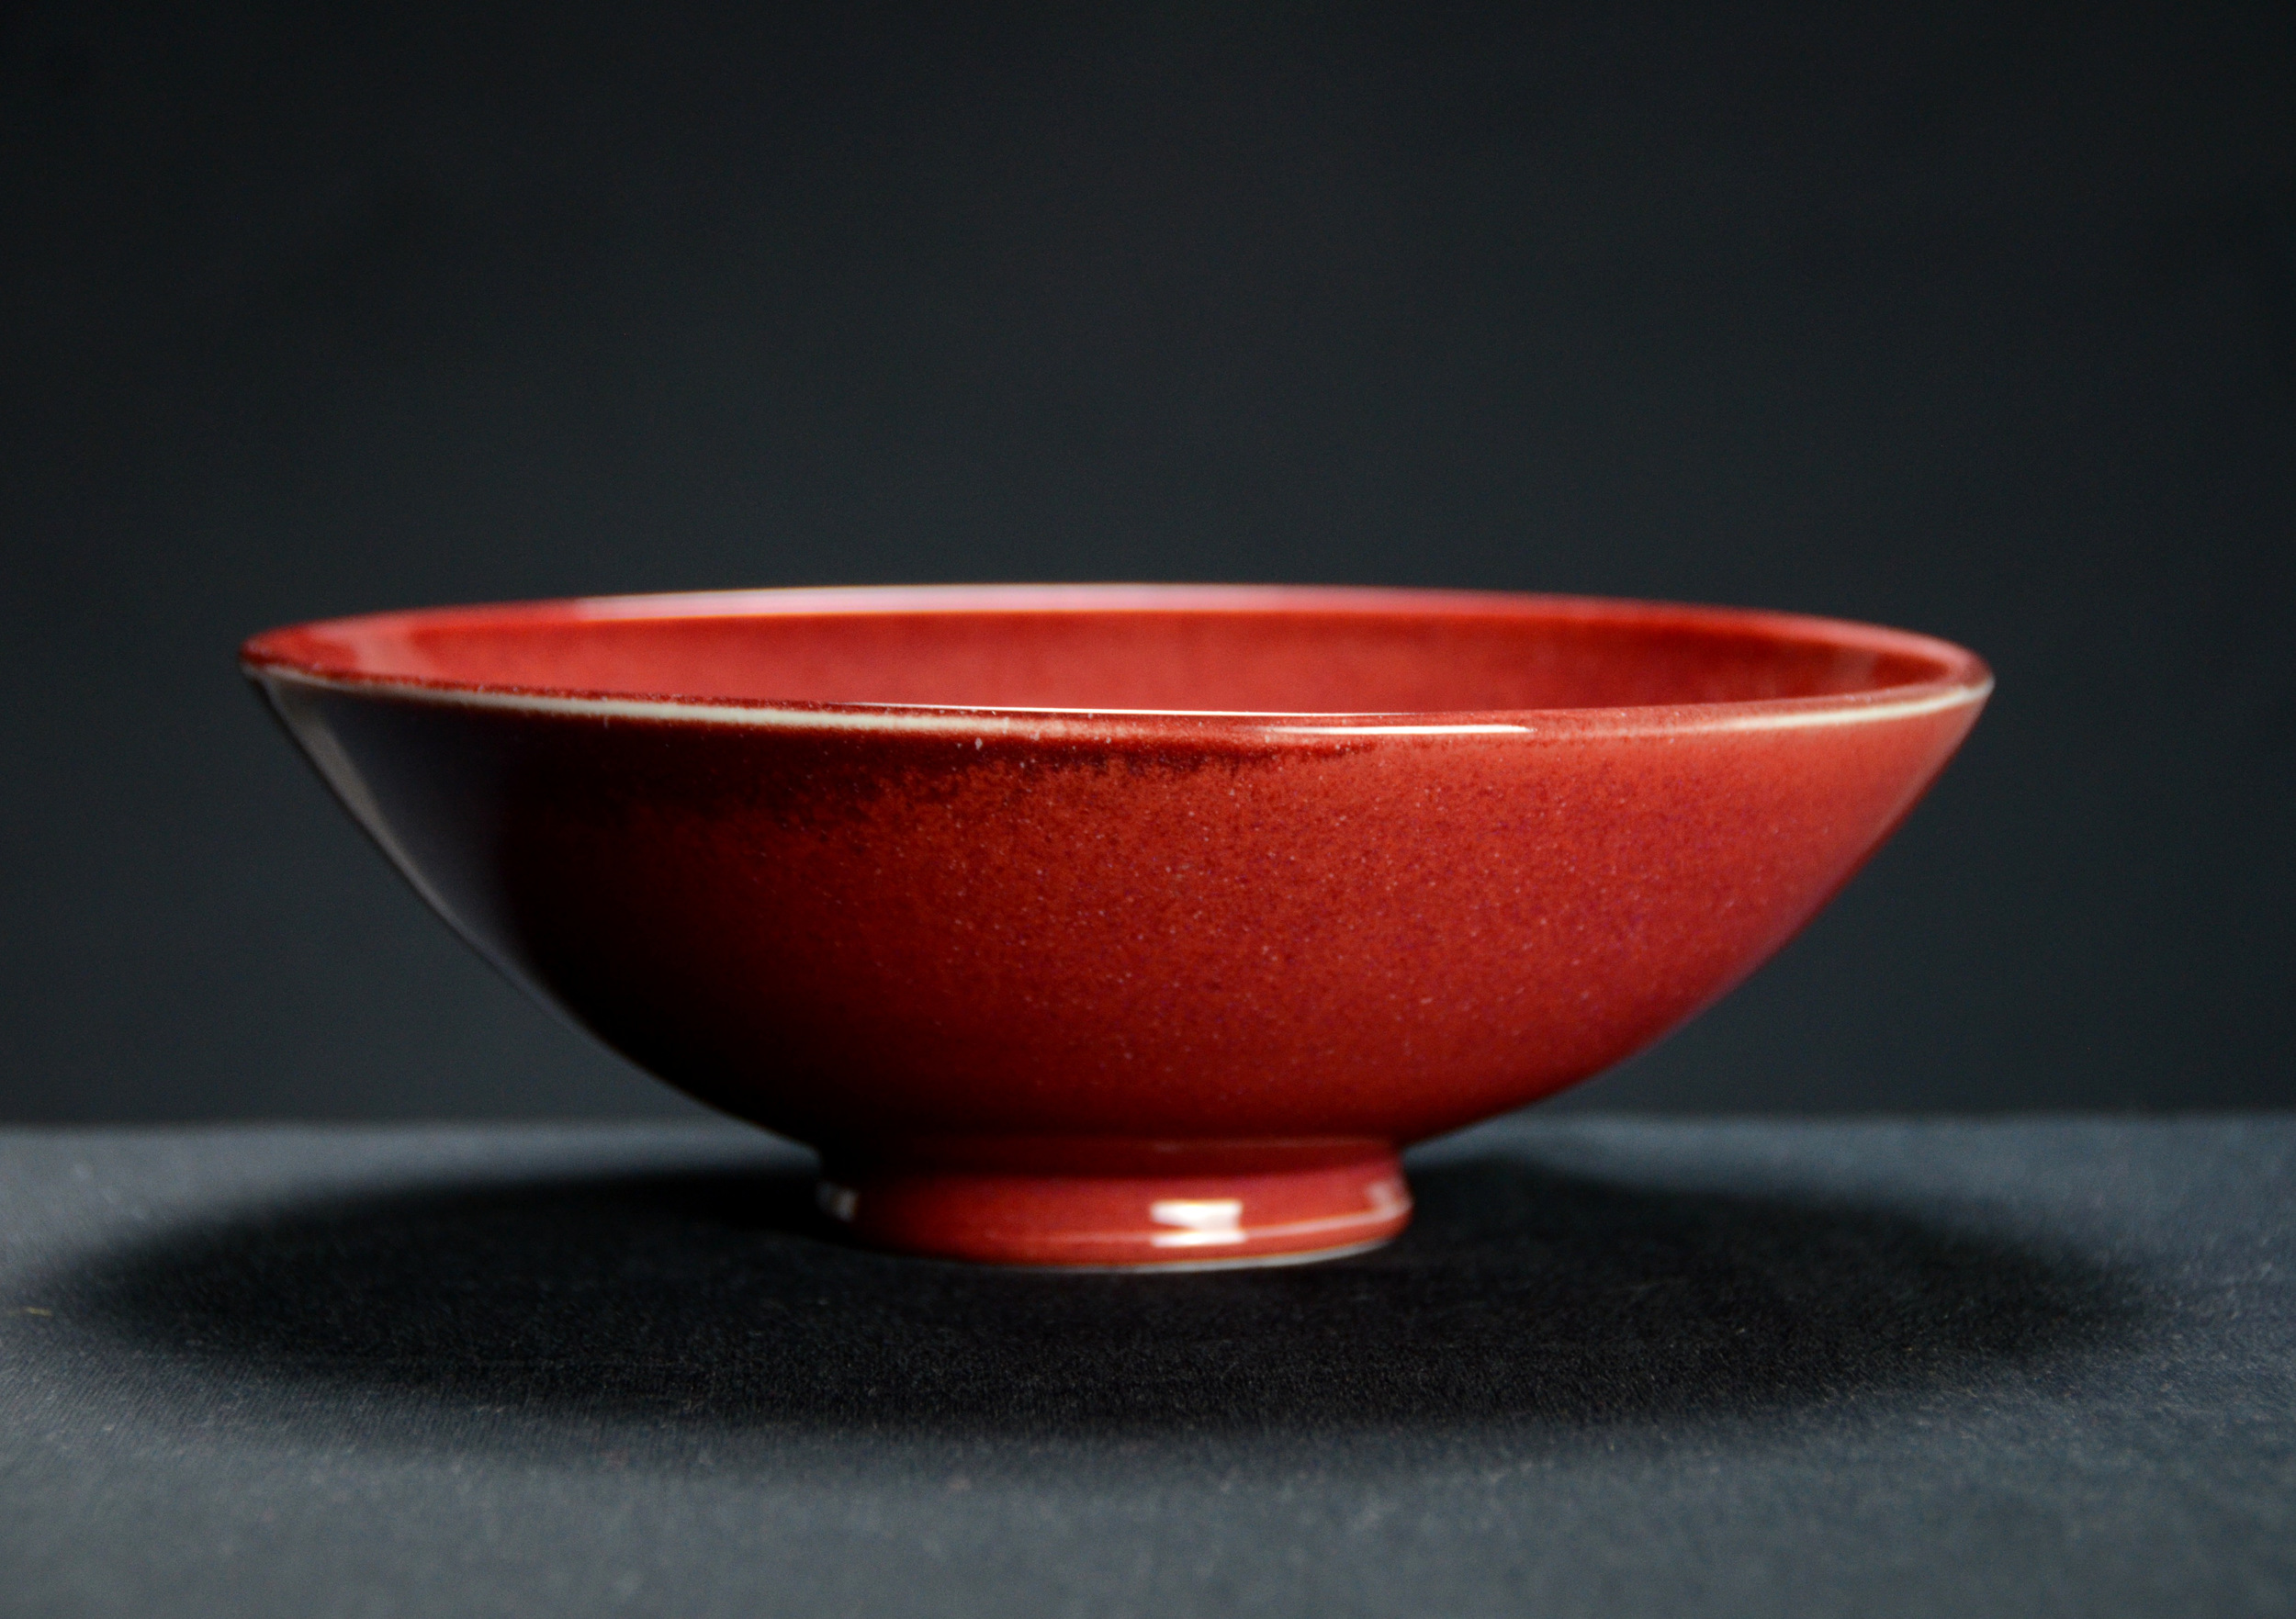 Porcelain Japanese Red Bowl | Hand thrown porcelain on a potter's wheel.  High Fired, Cone 10, Vegas Red Glaze, Hand Trimmed, Ceramic | Caldwell Pottery